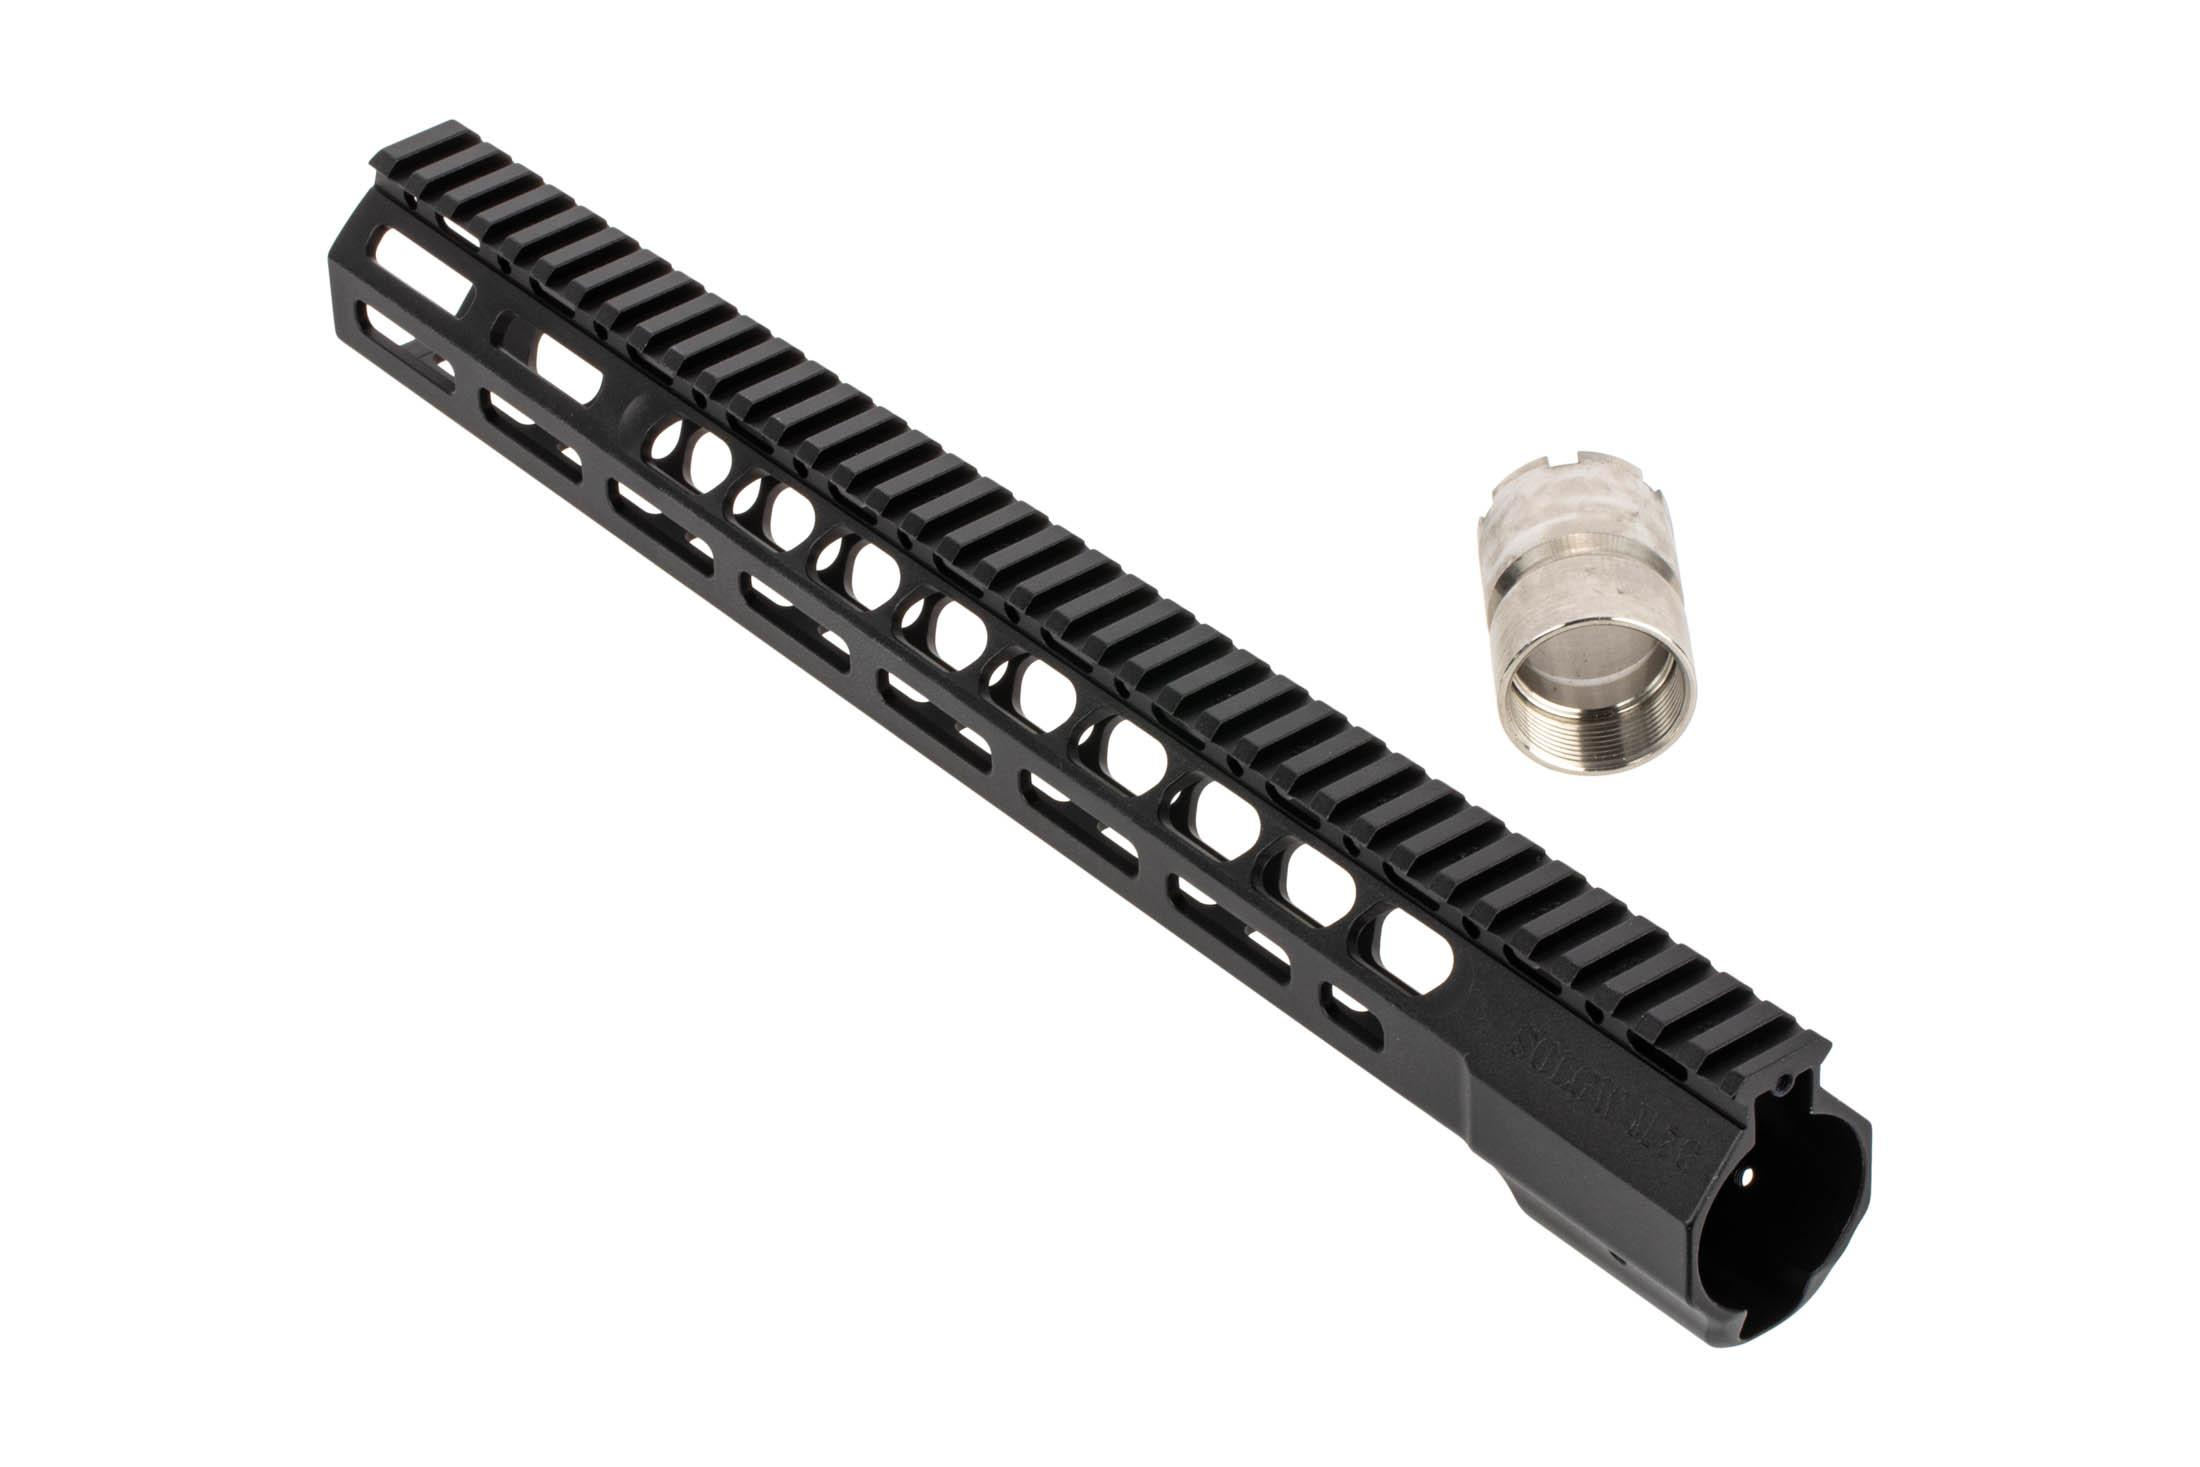 The Sons of Liberty Gunworks wedgelock M76 handguard comes with a 4140 steel barrel nut